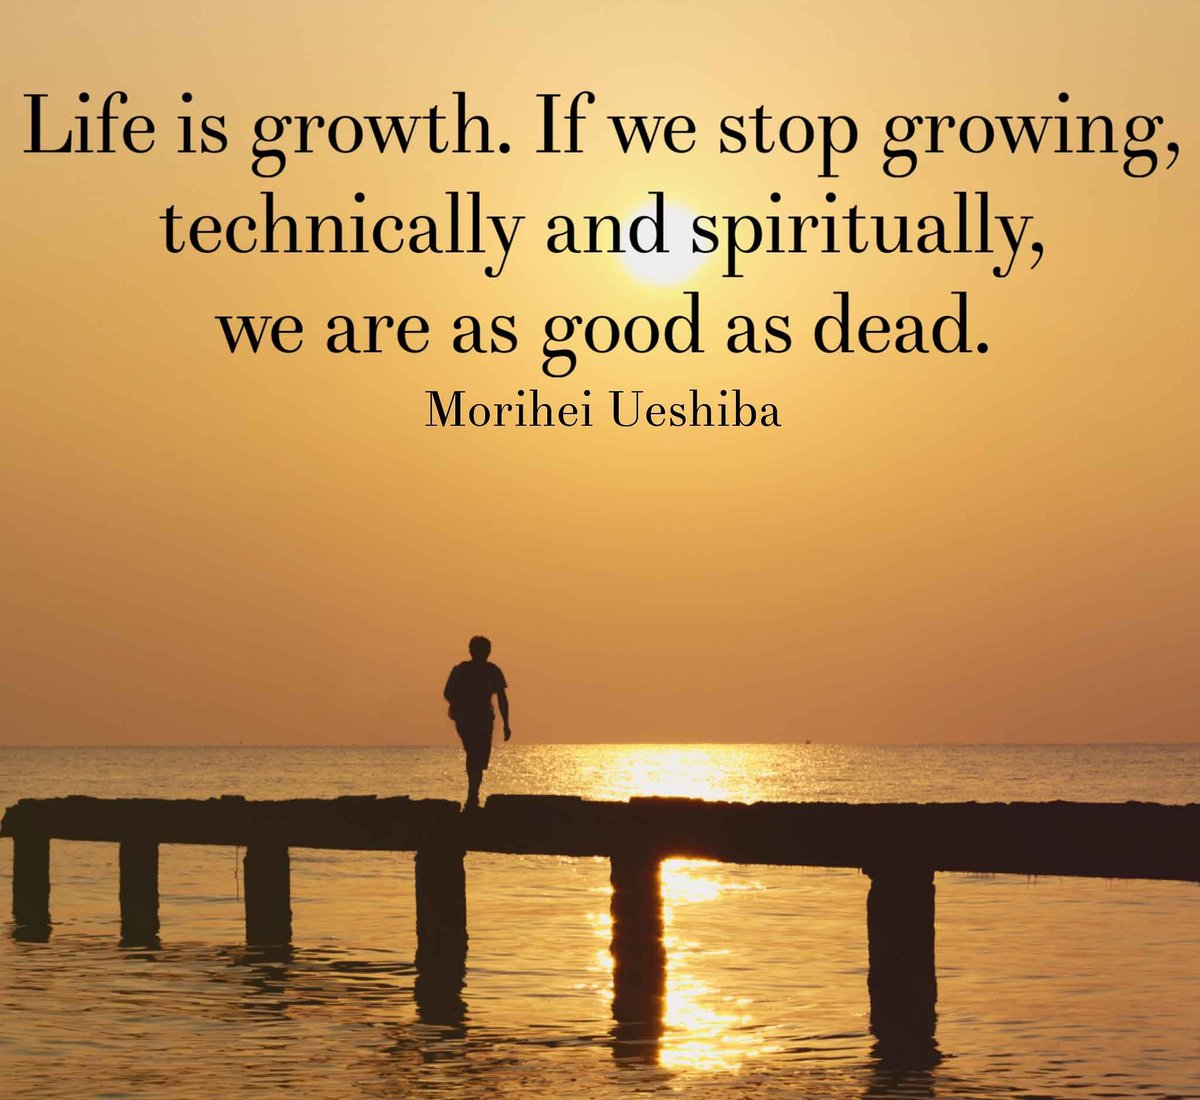 #growth #life #quote